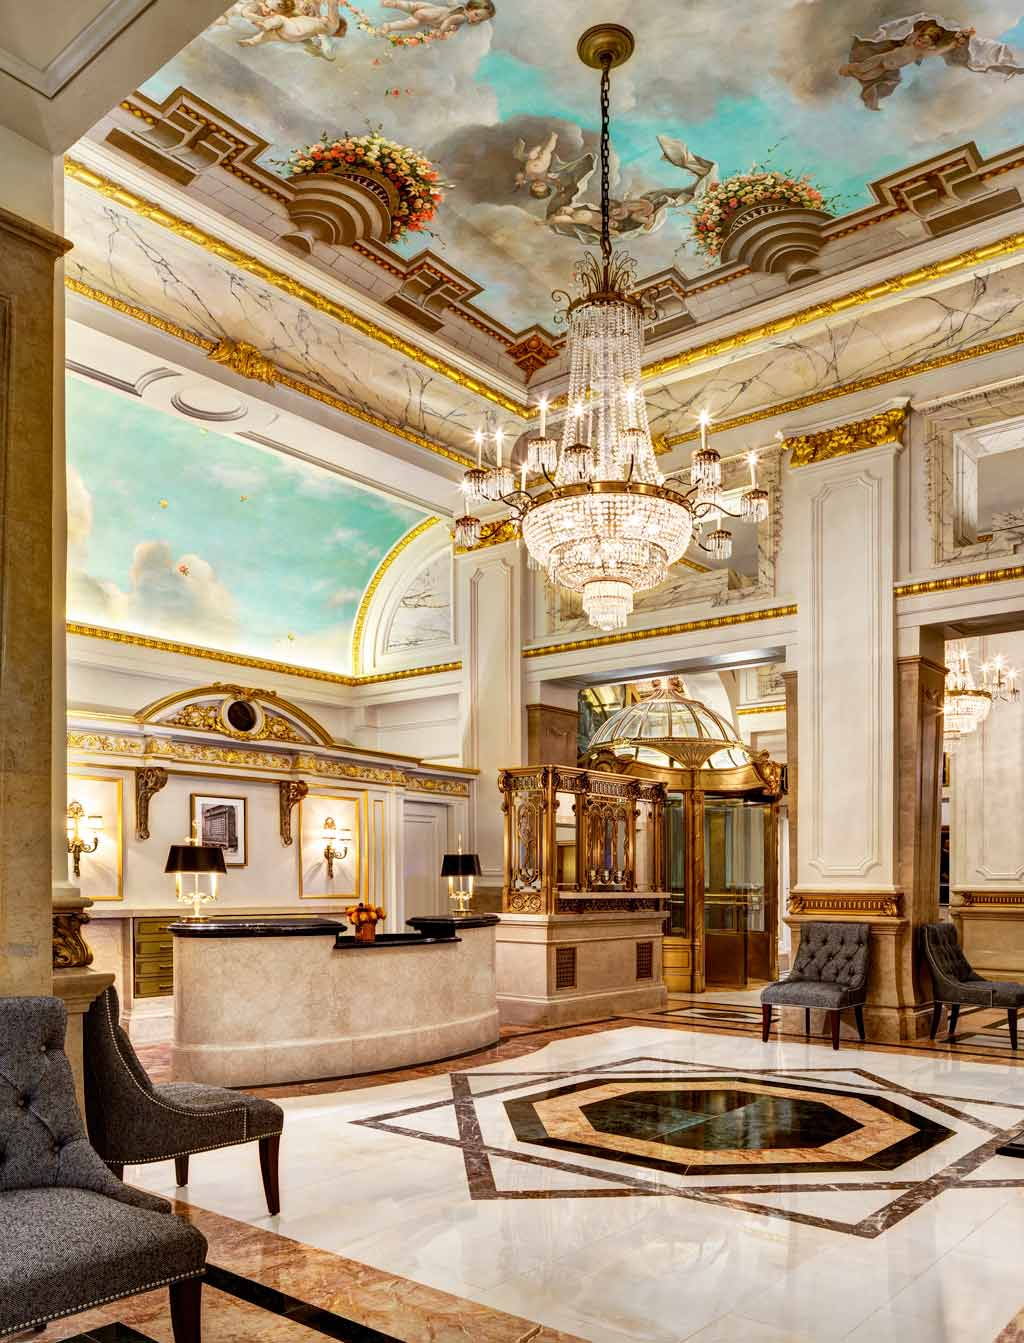 Lobby of The St Regis New York, NY, United States